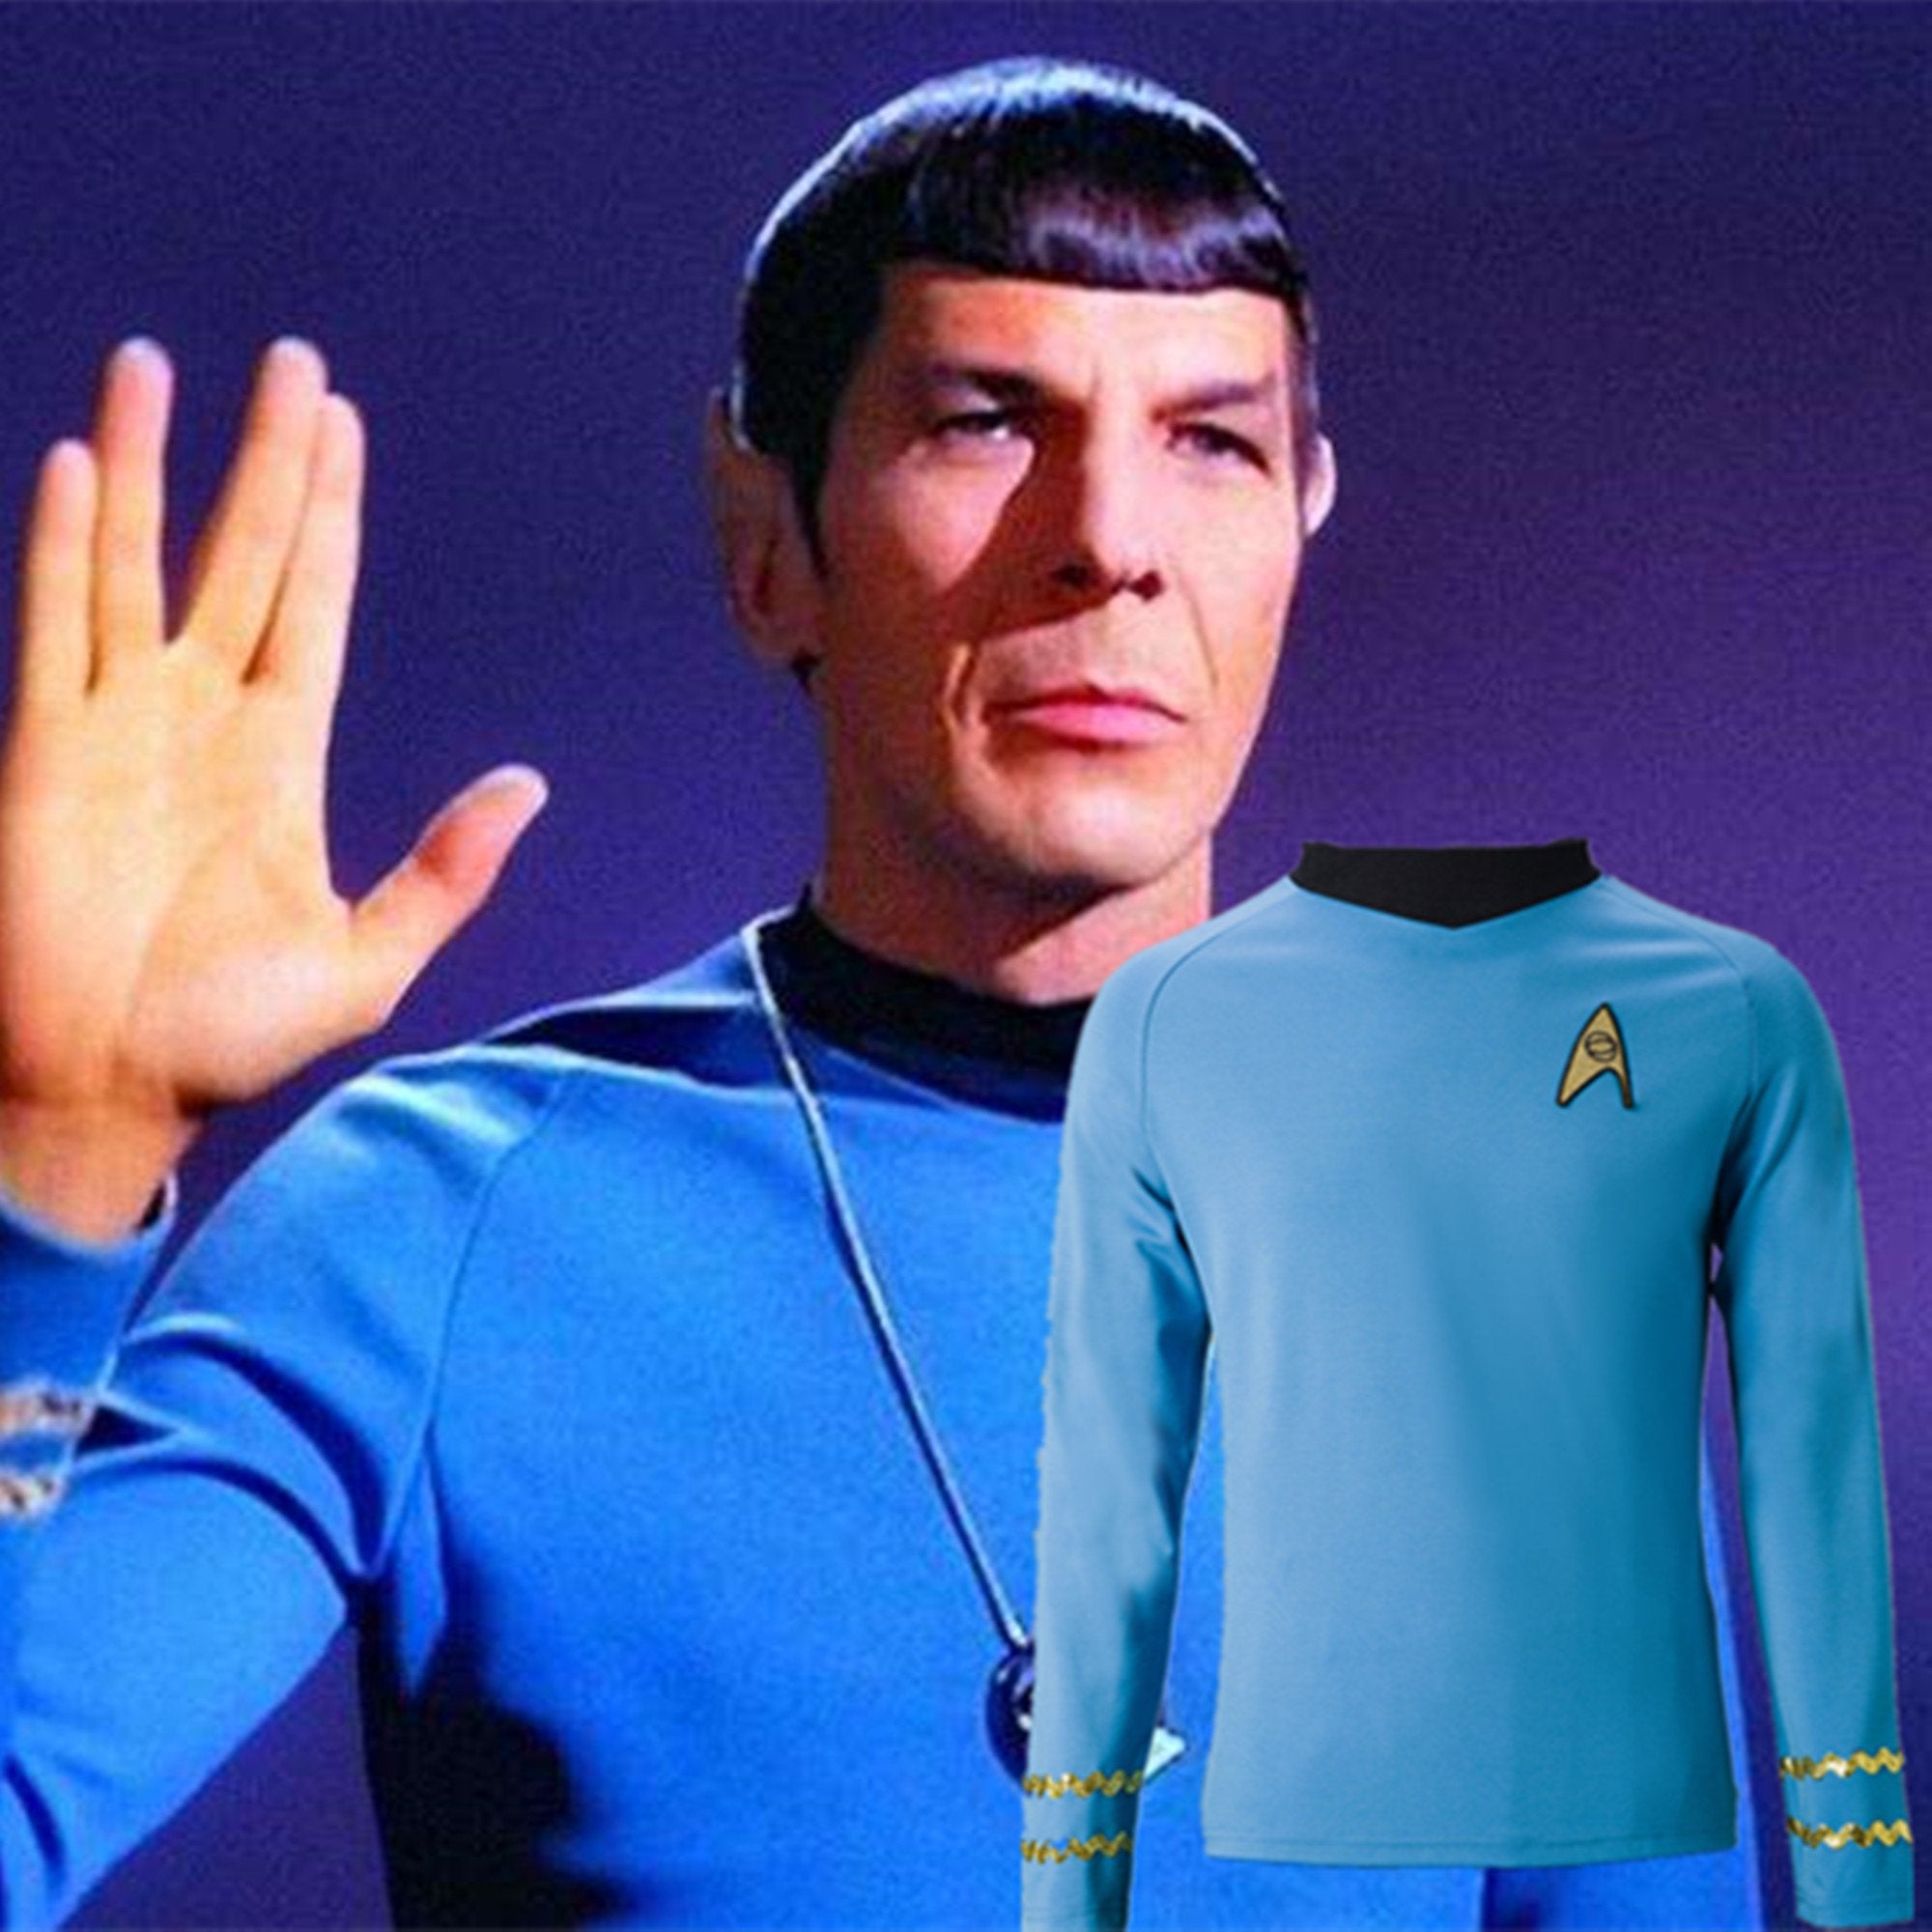 Cosplay Star Trek TOS The Original Series Kirk Shirt Uniform Costume Halloween Blue Costume - BFJ Cosmart